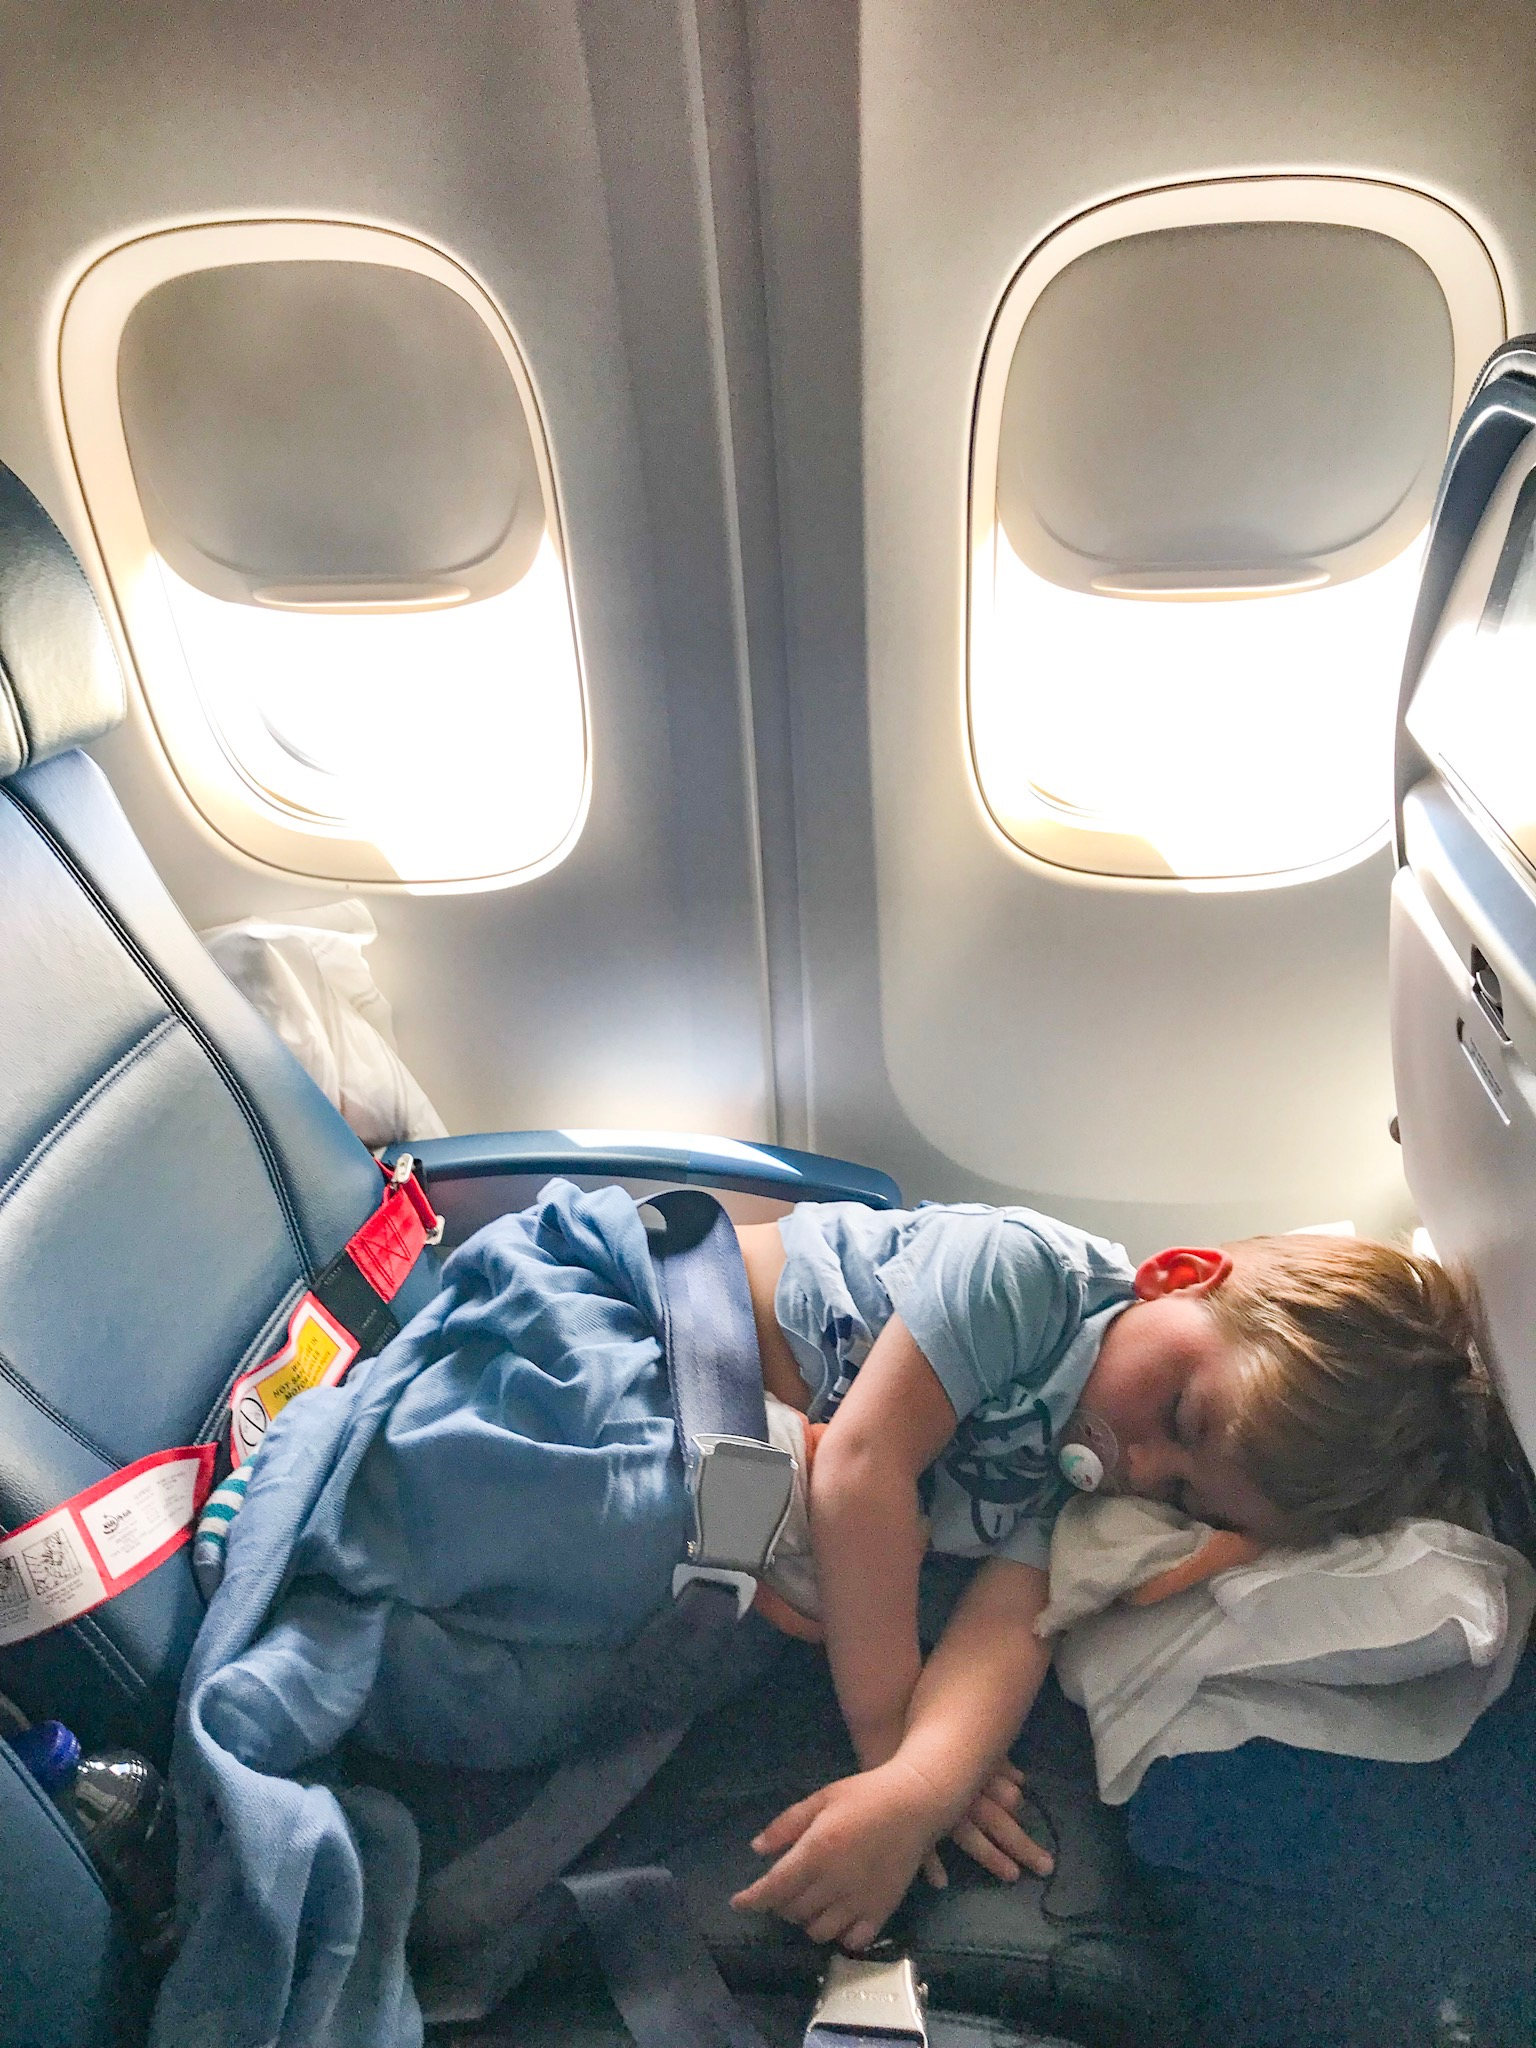 My son using his inflatable pillow to take a nap on our Day flight from Rome to Detroit